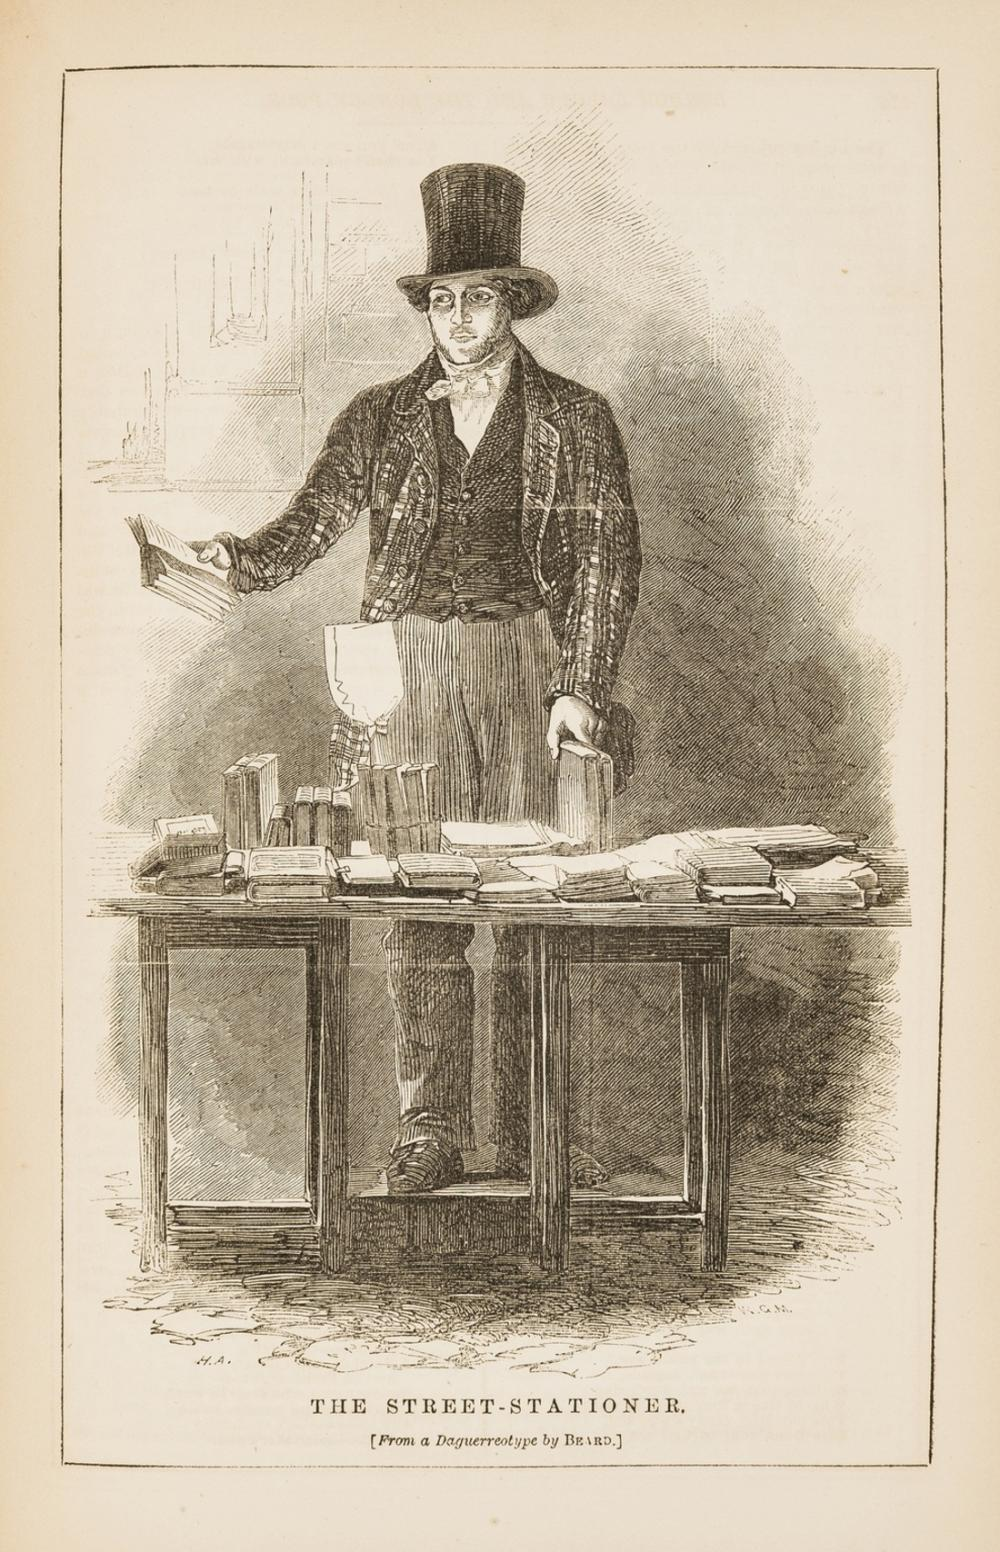 Mayhew (Henry) London Labour and the London Poor, 4 vol., 1861-62.